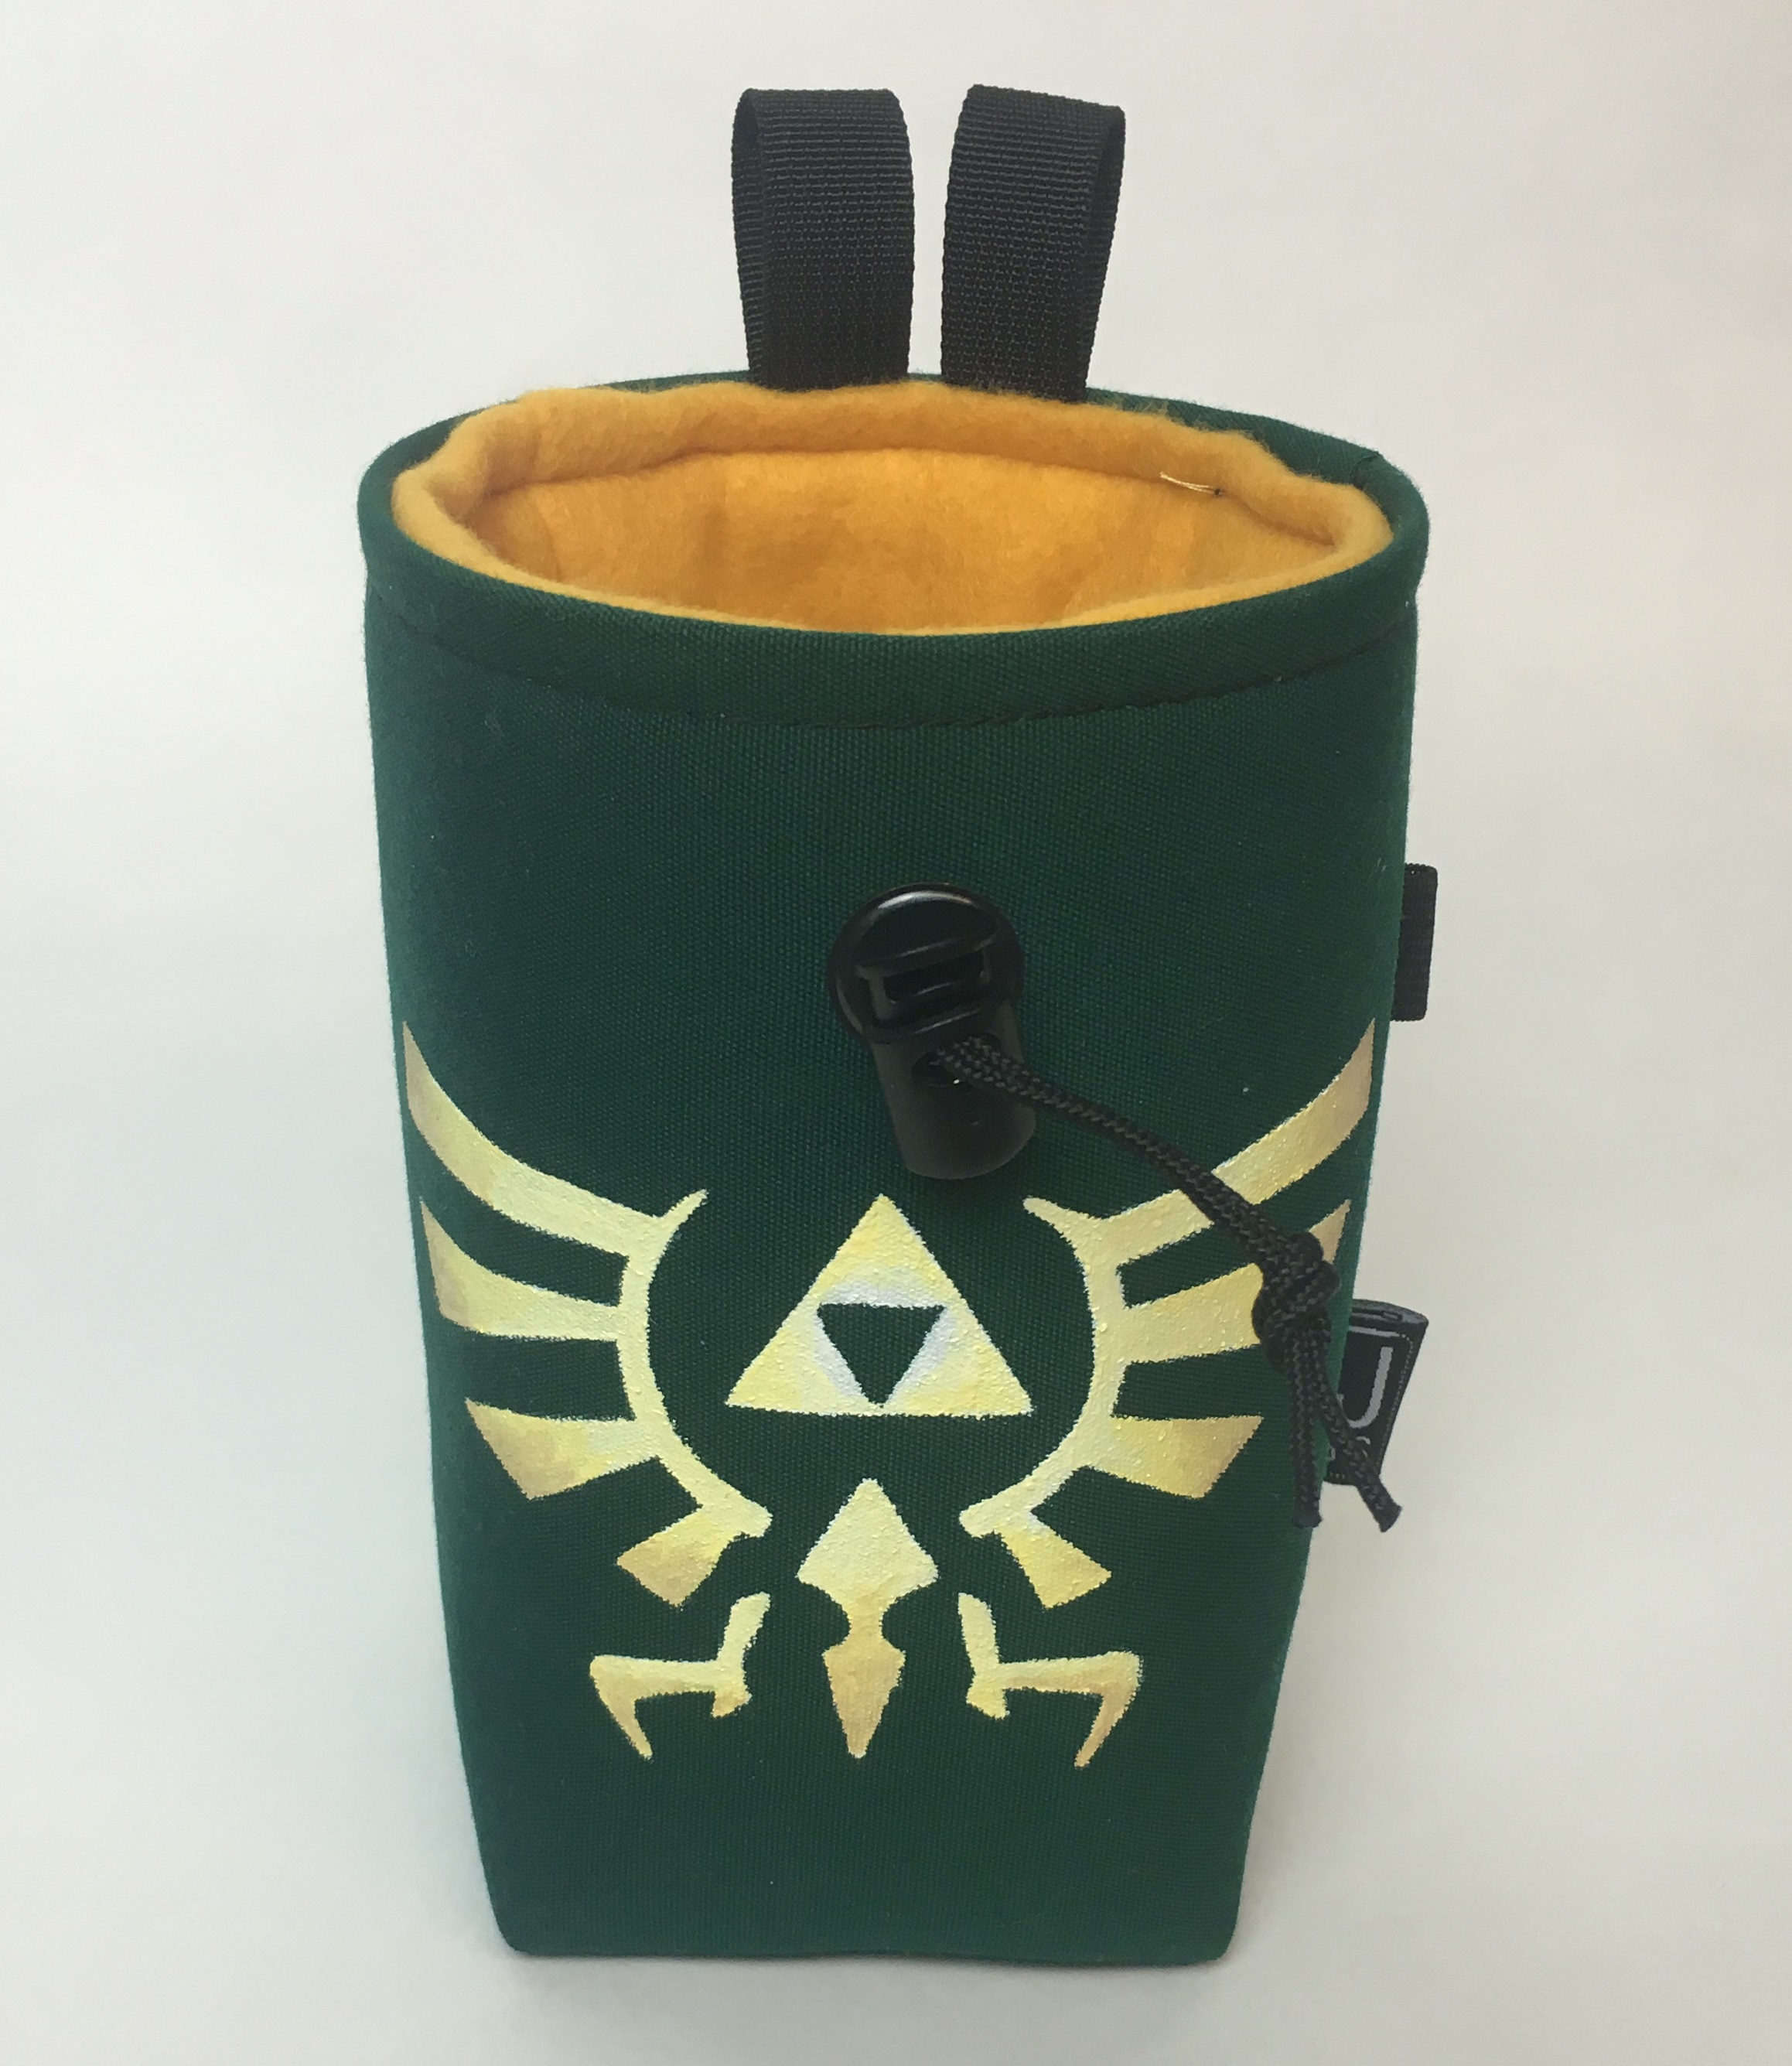 Chalk Bag Archives Kendal Jackson Bags Tote Green I Think Thats Why Zelda Fans Have A Way Of Finding Us On The Web And Out At Crag This Design Is One Weve Been Doing For Some Time